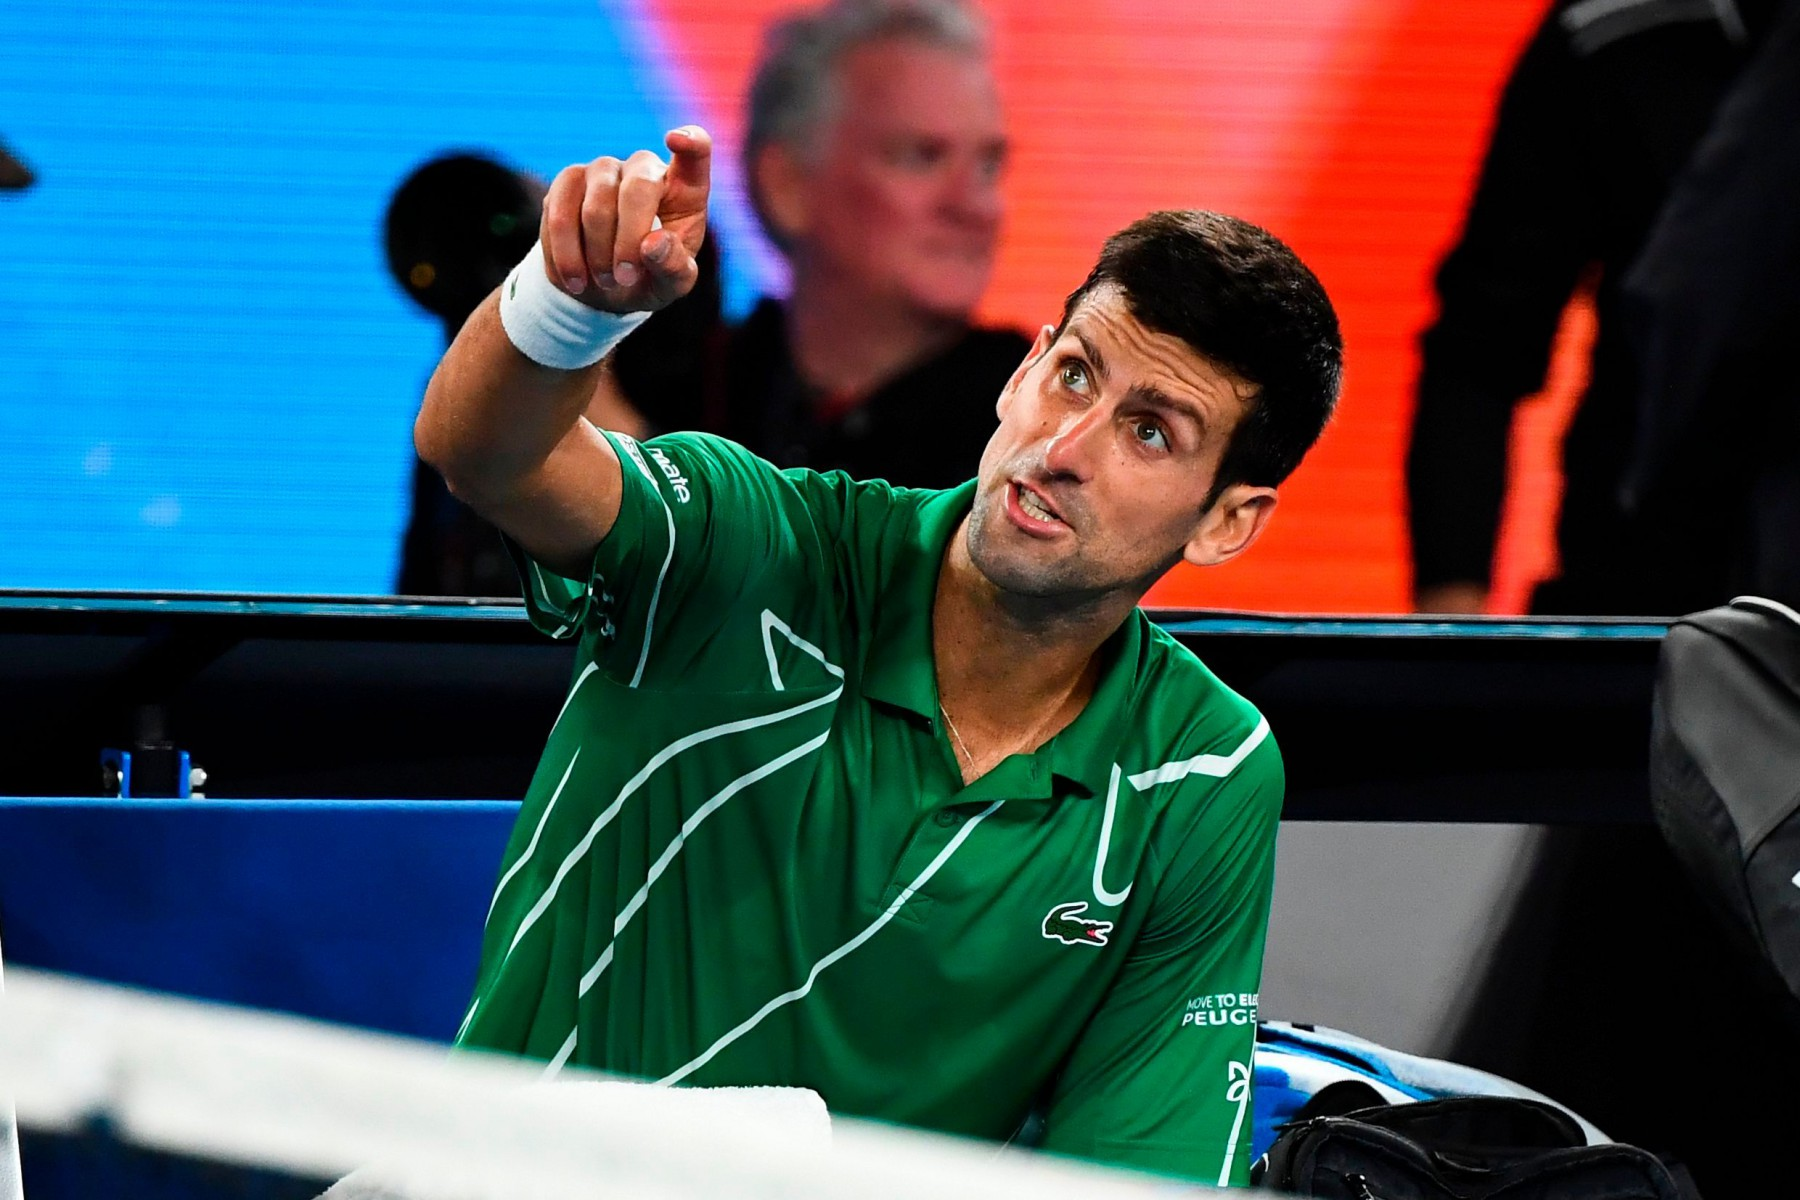 The Serb blasted the chair umpire and appeared to tell the crowd to 'shut the f*** up'